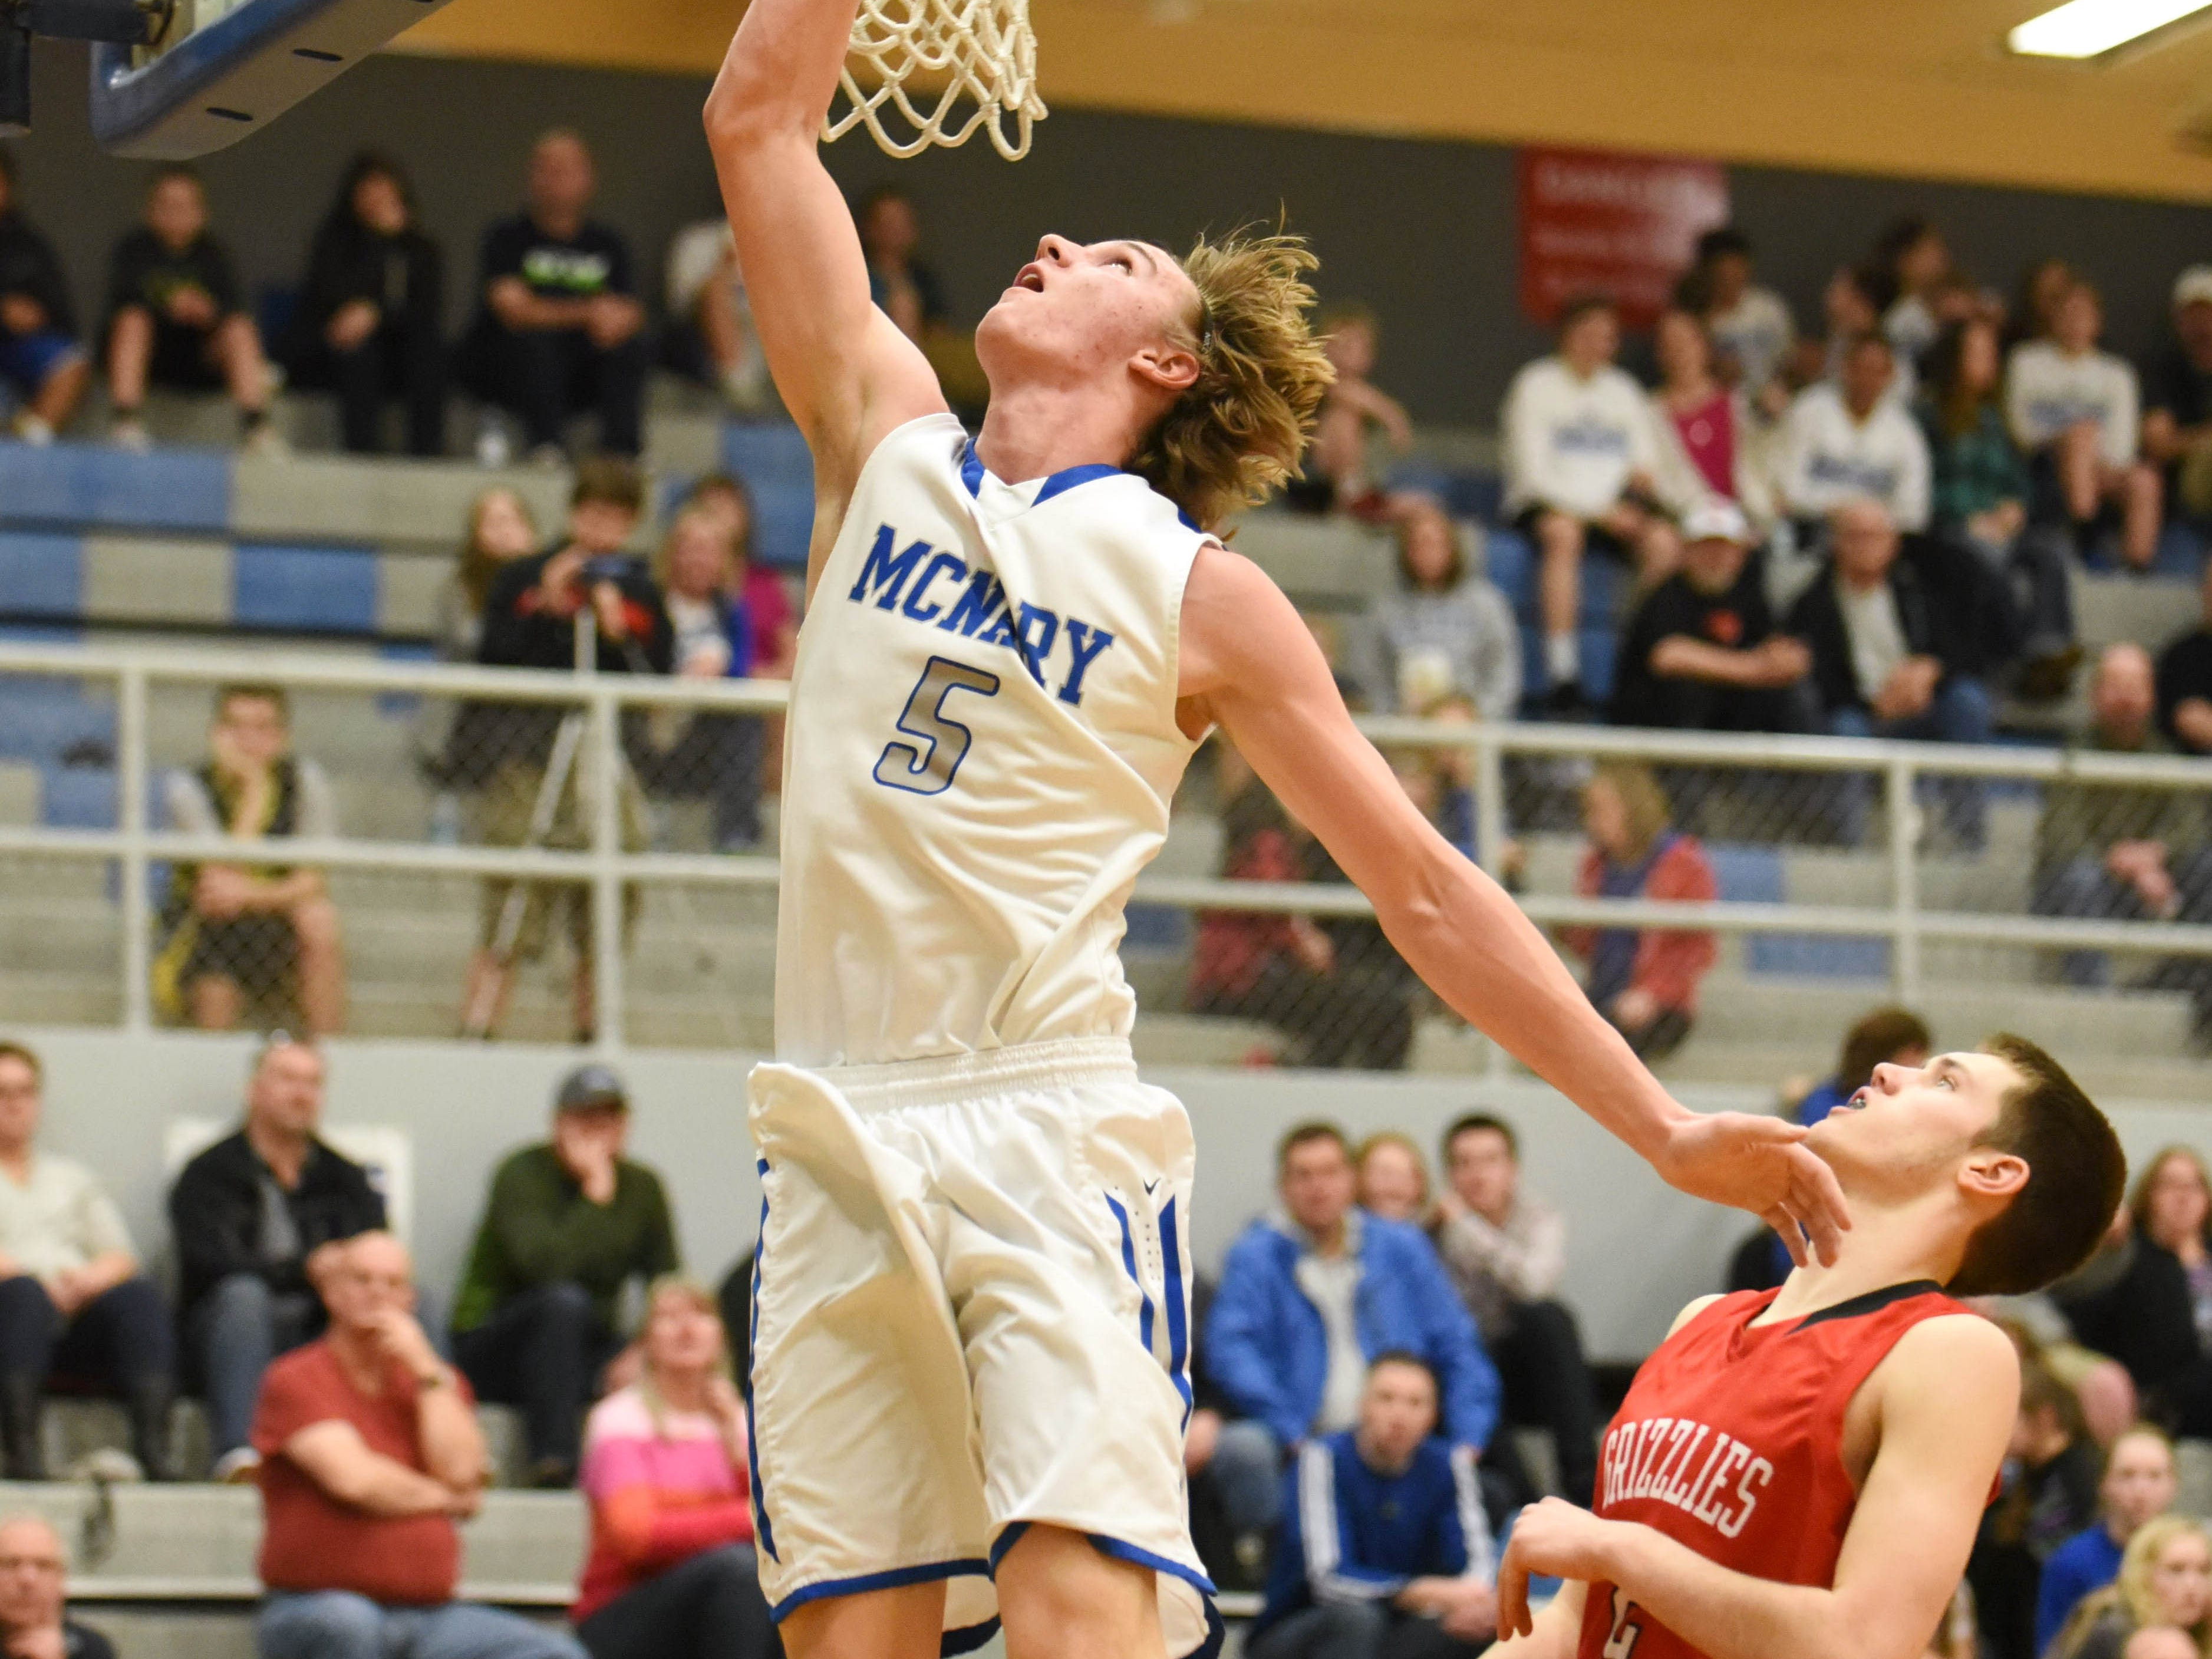 McNary's Devon Dunagan scores as the Celts take on McMinnville in a Greater Valley Conference game on Friday, Feb. 13, 2015.